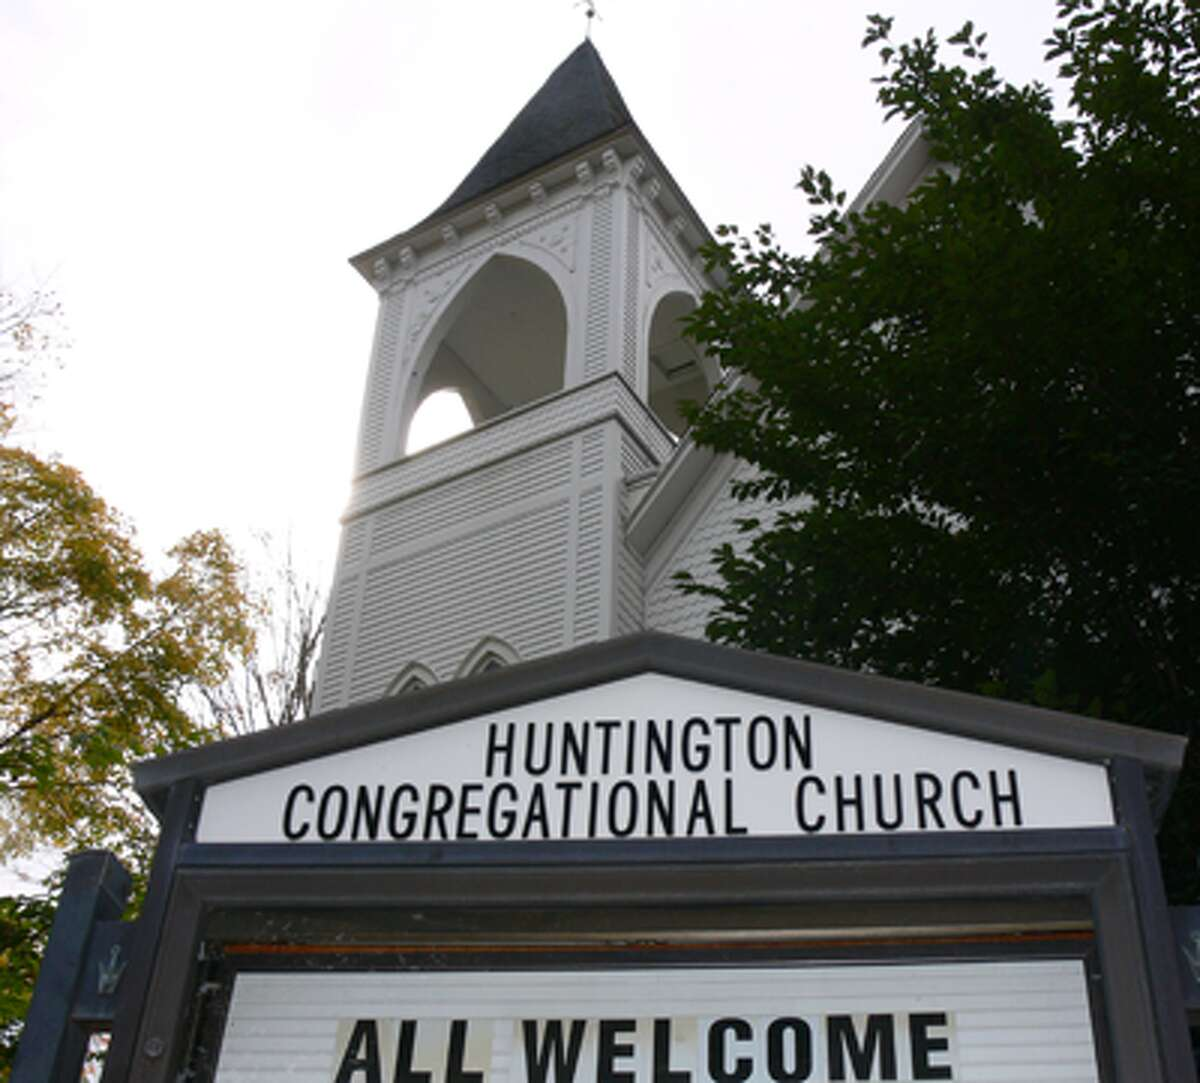 A view of Huntington Congregational Church in Shelton. (Photos by Brad Durrell)